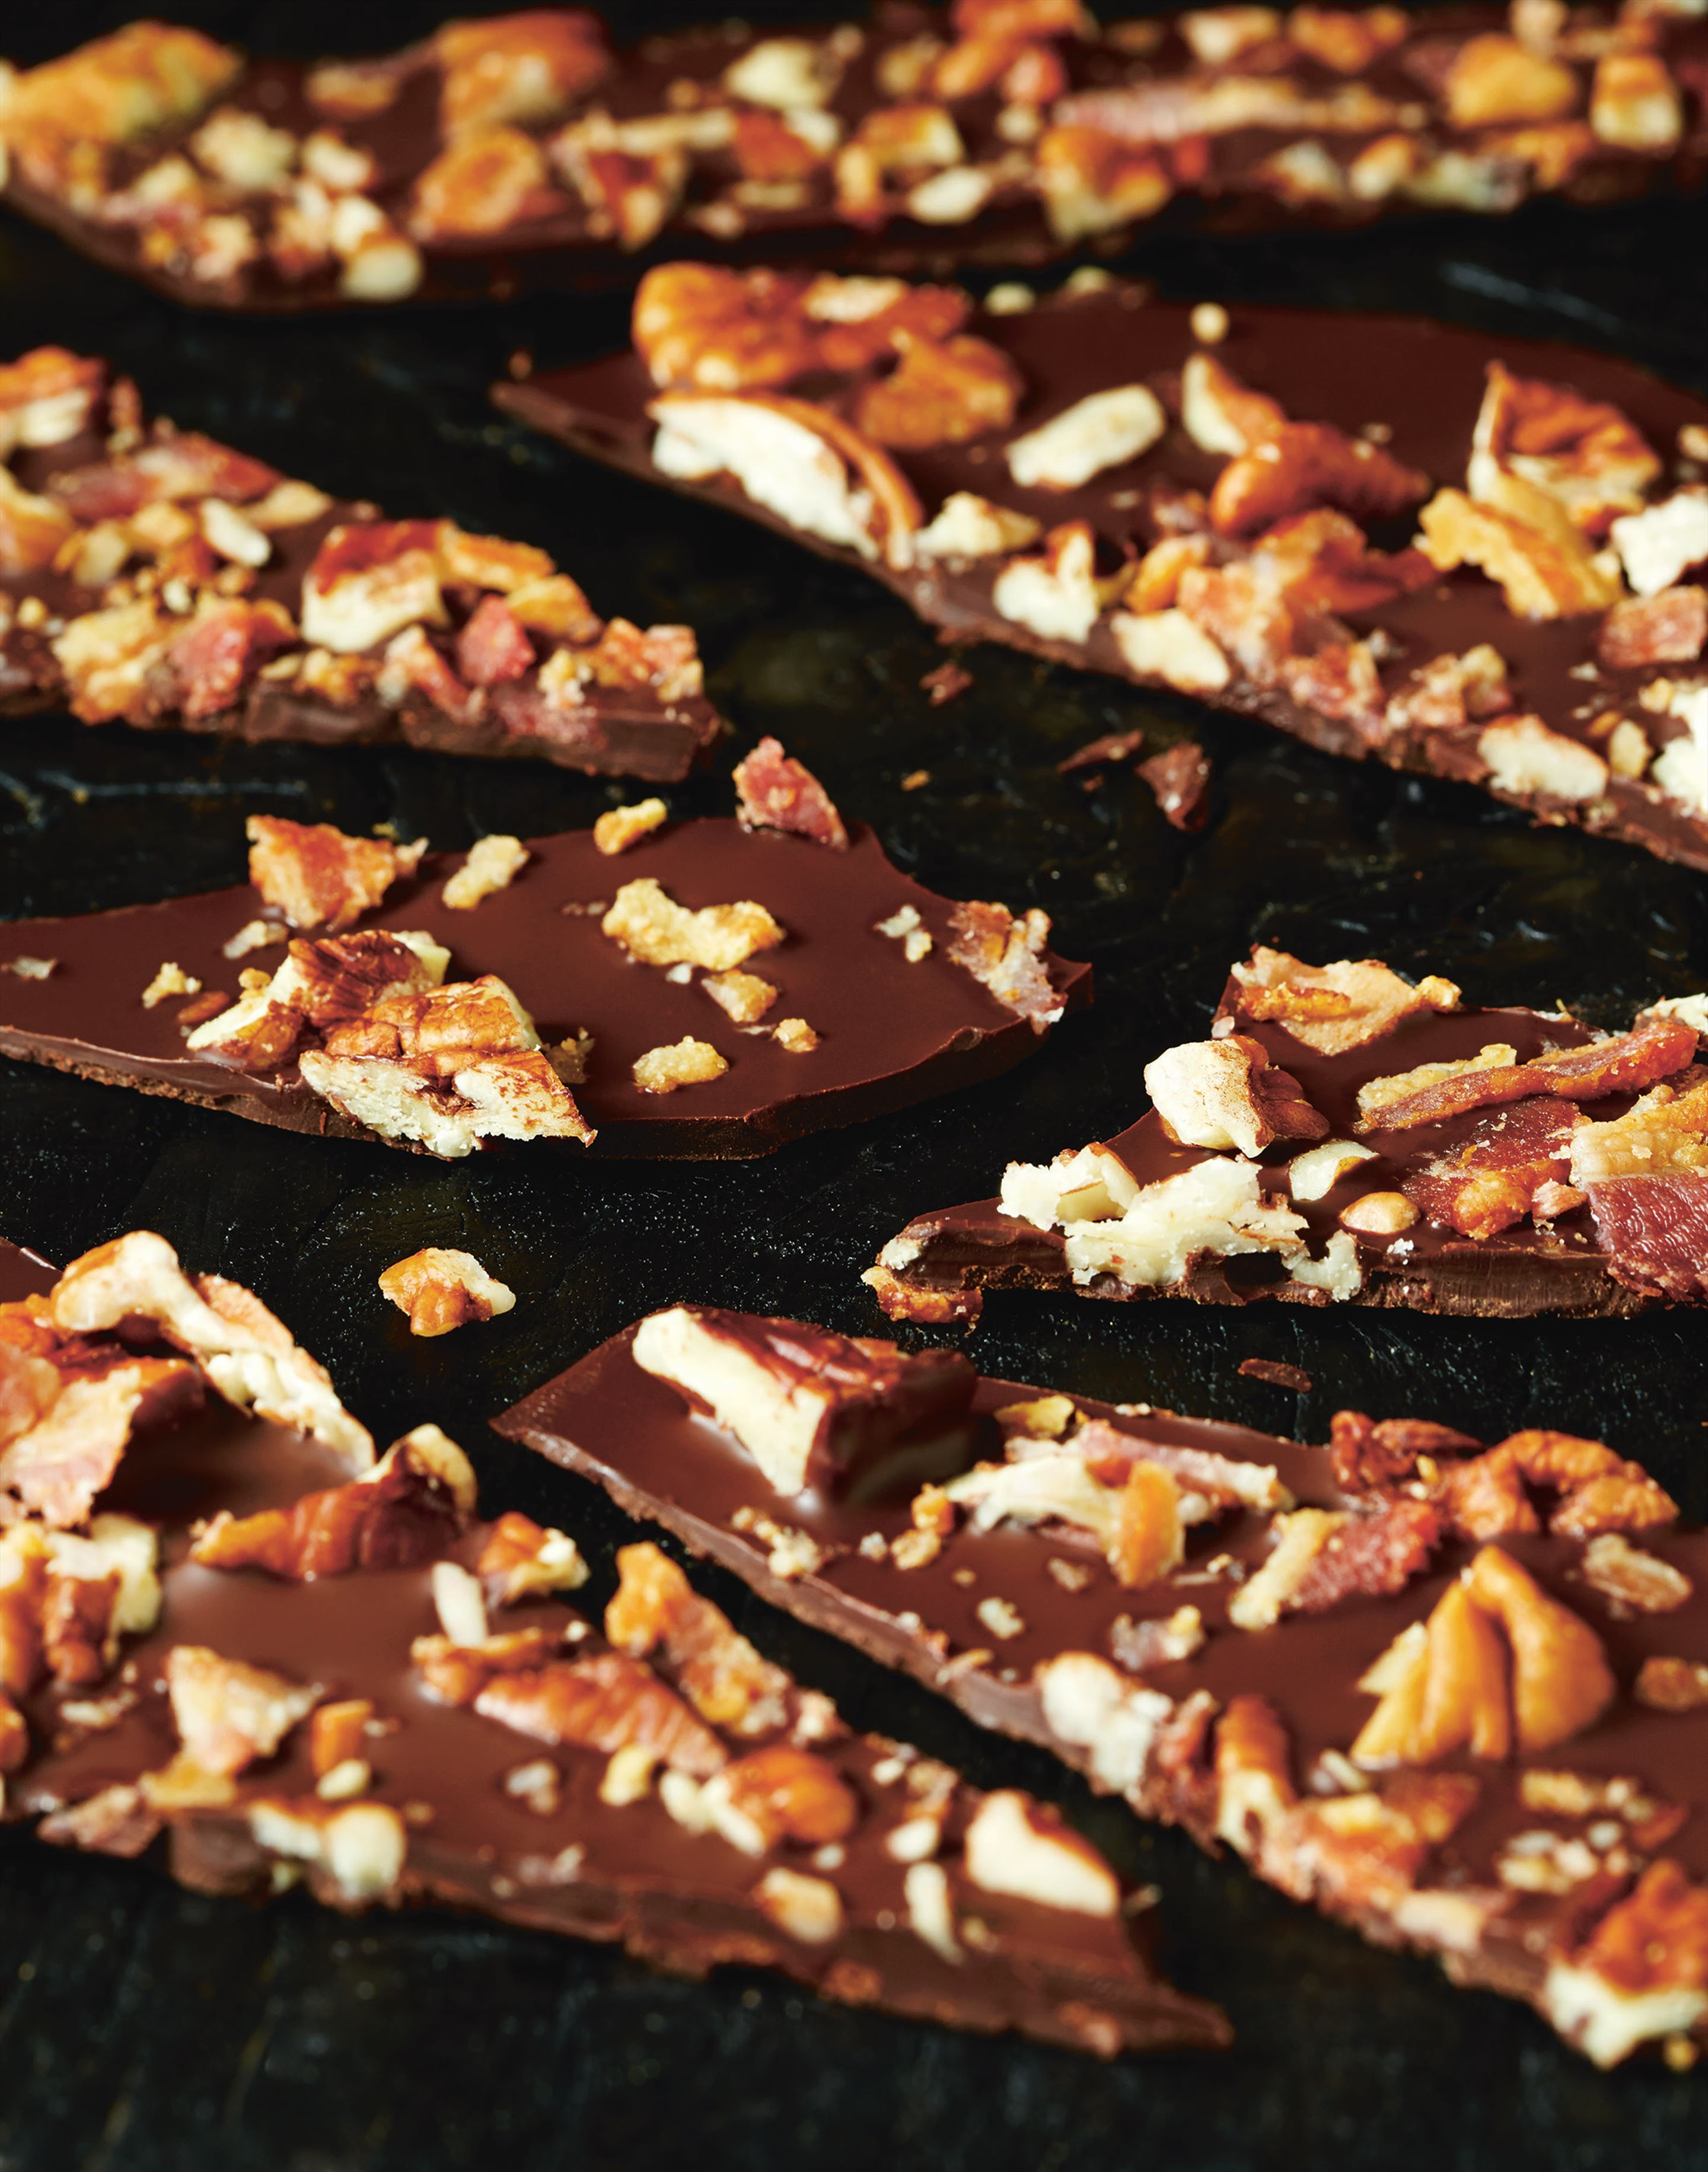 Bacon and pecan nut chocolate shards